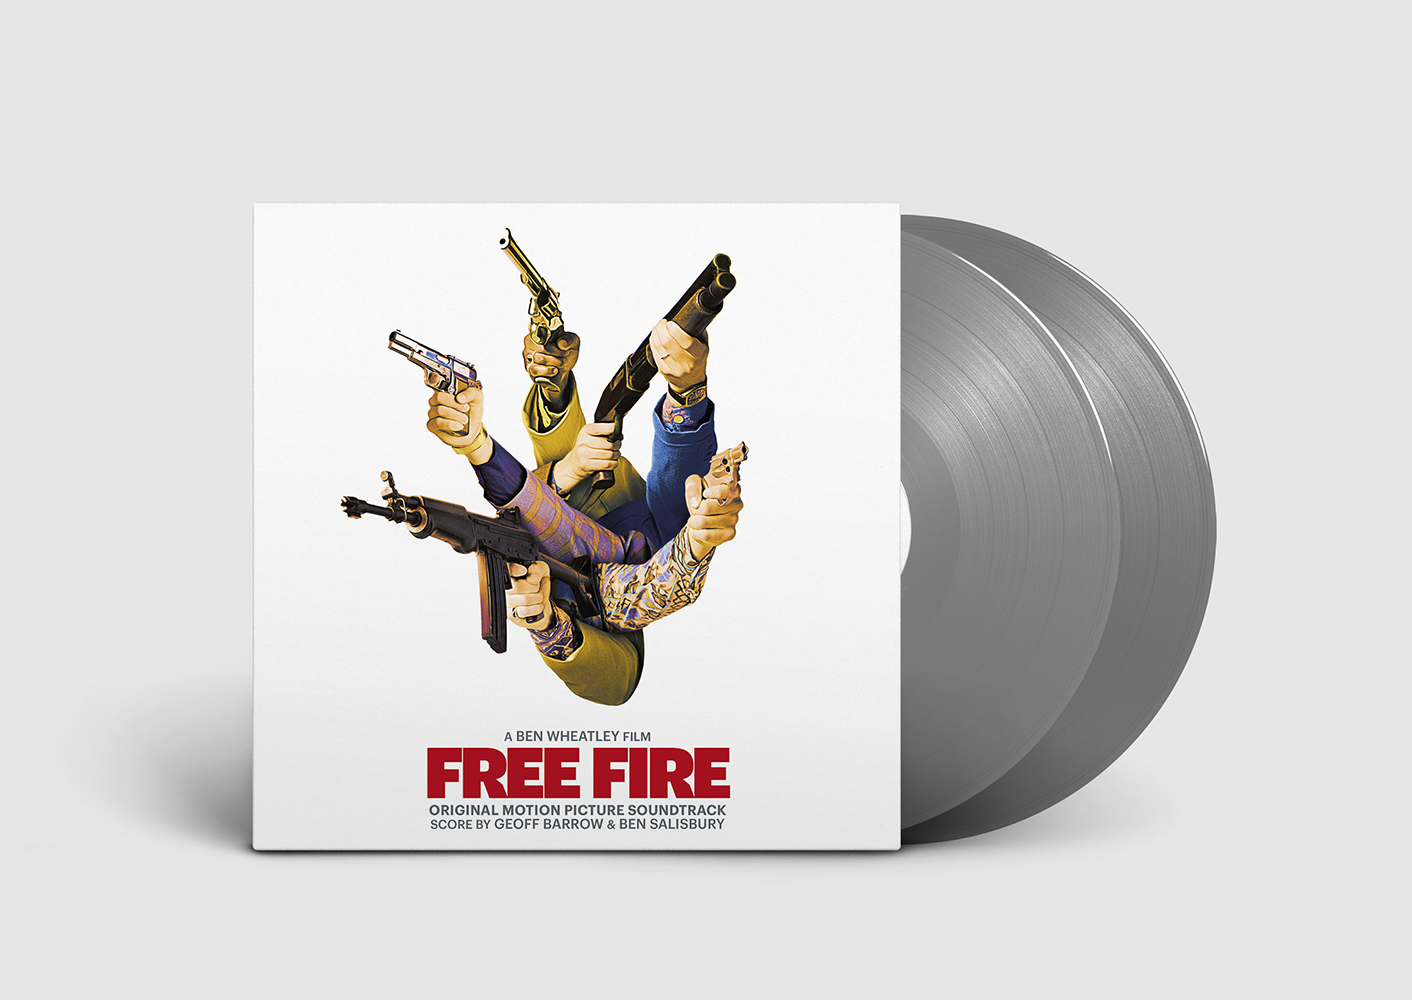 Free fire packshot